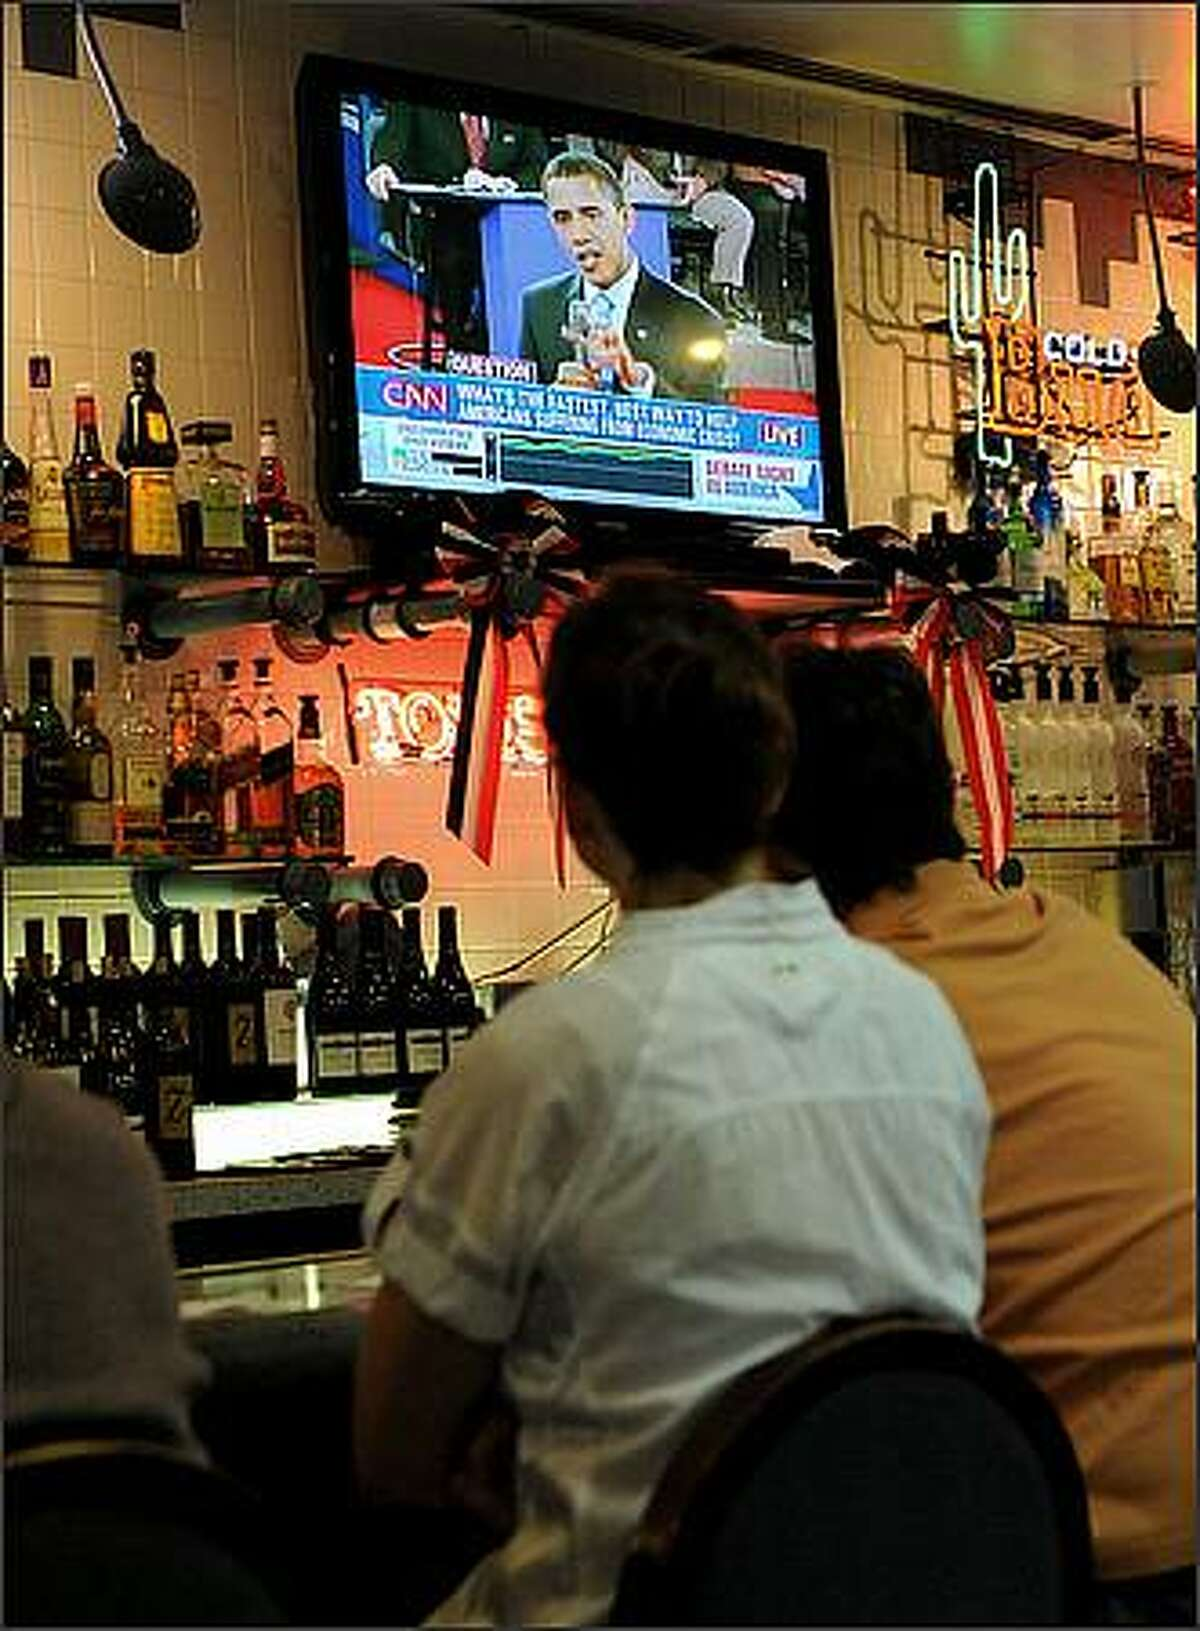 Patrons watch Democratic presidential candidate Sen. Barack Obama speaking during a presidential debate Tuesday, Oct. 7, 2008 at Tom's Tavern in Phoenix. (AP Photo/Matt York)